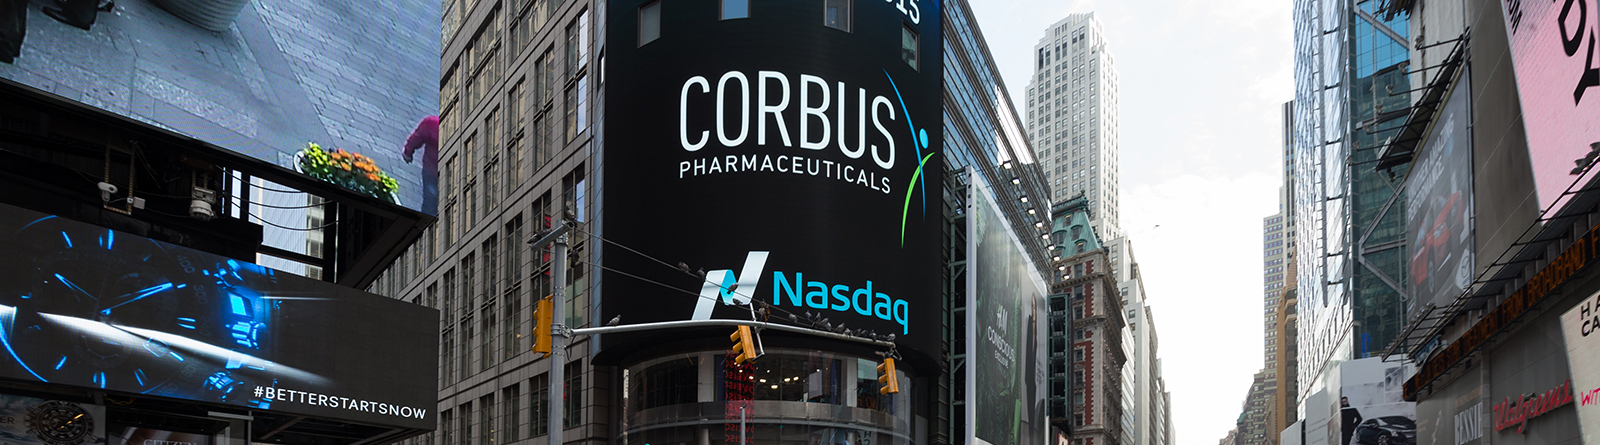 Corbus Pharmaceuticals Reports Second Quarter Financial Results and Corporate Updates Banner